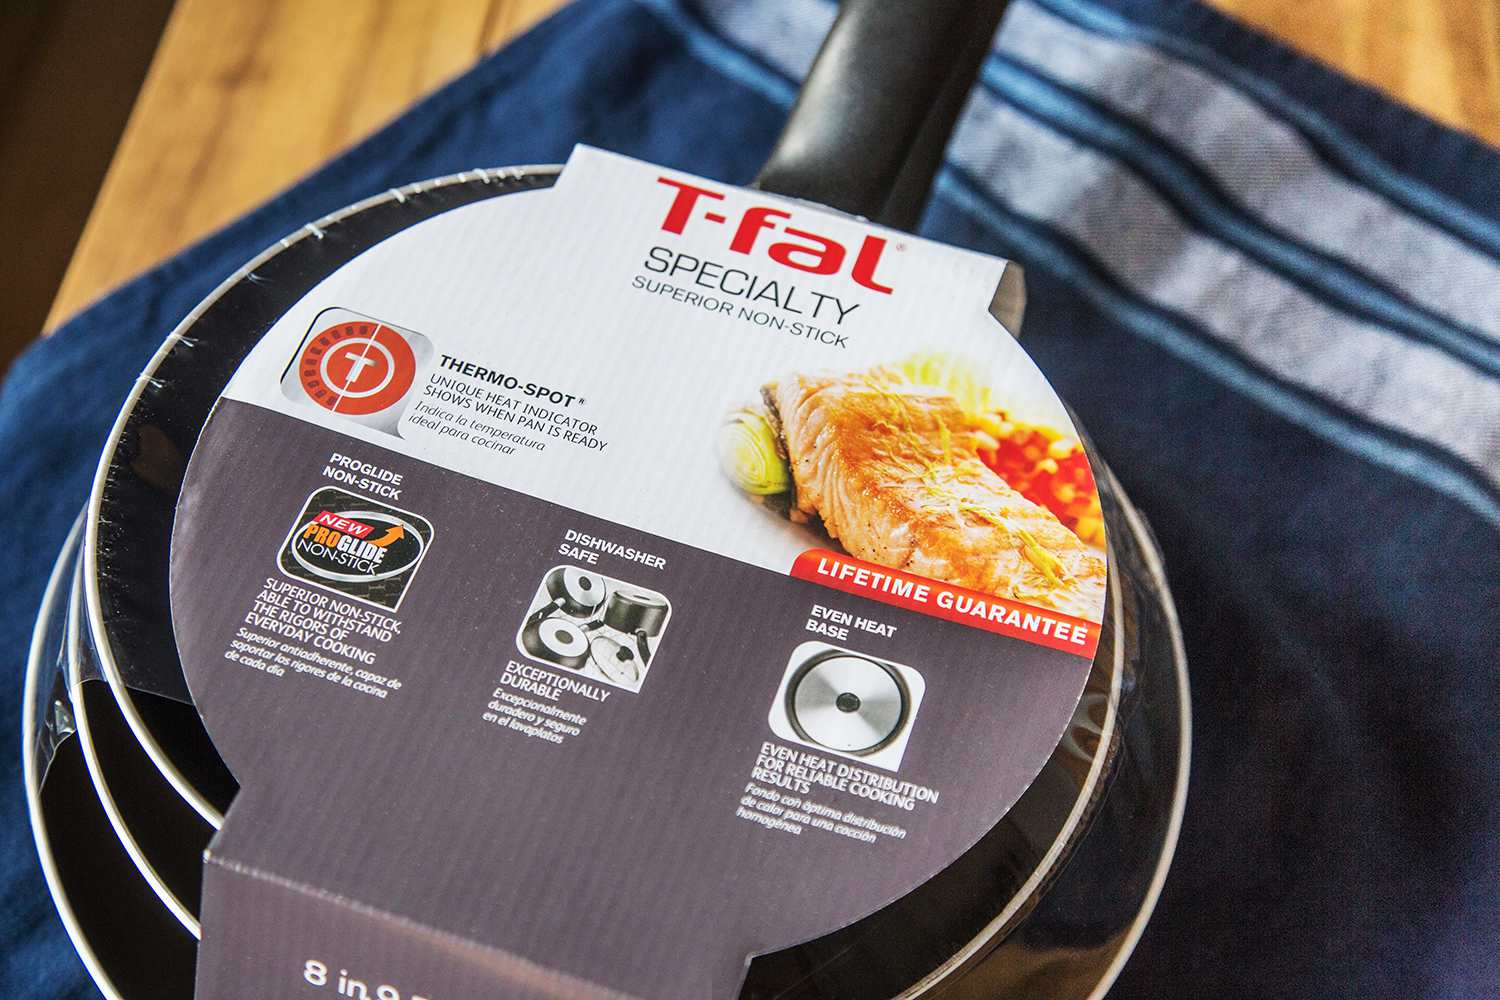 T-fal Specialty Nonstick 3-Piece Fry Pan Set